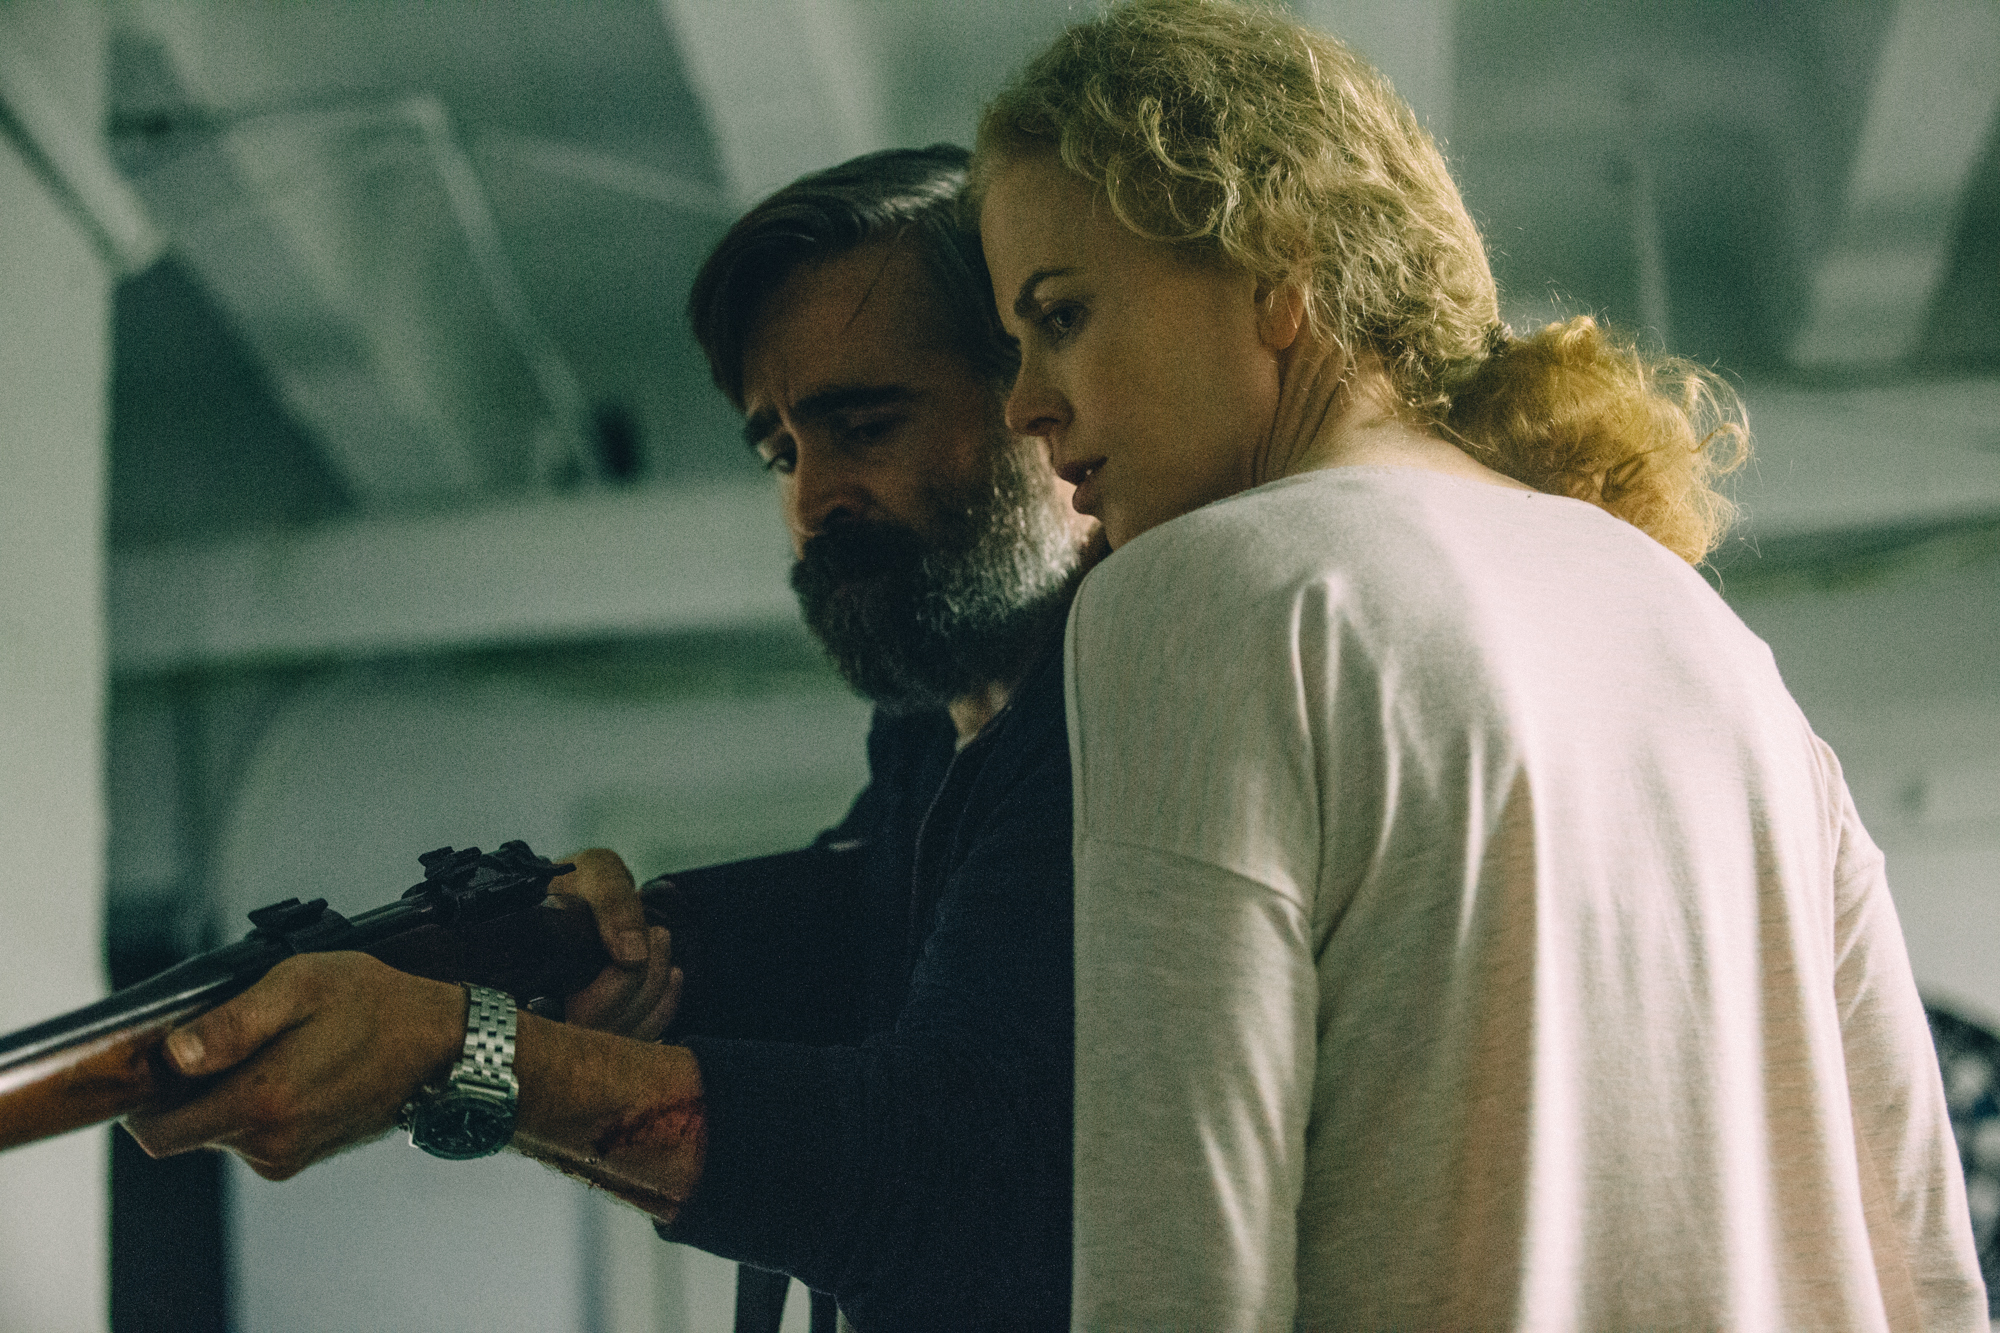 Nicole Kidman and Colin Farrell in The Killing of a Sacred Deer (2017)